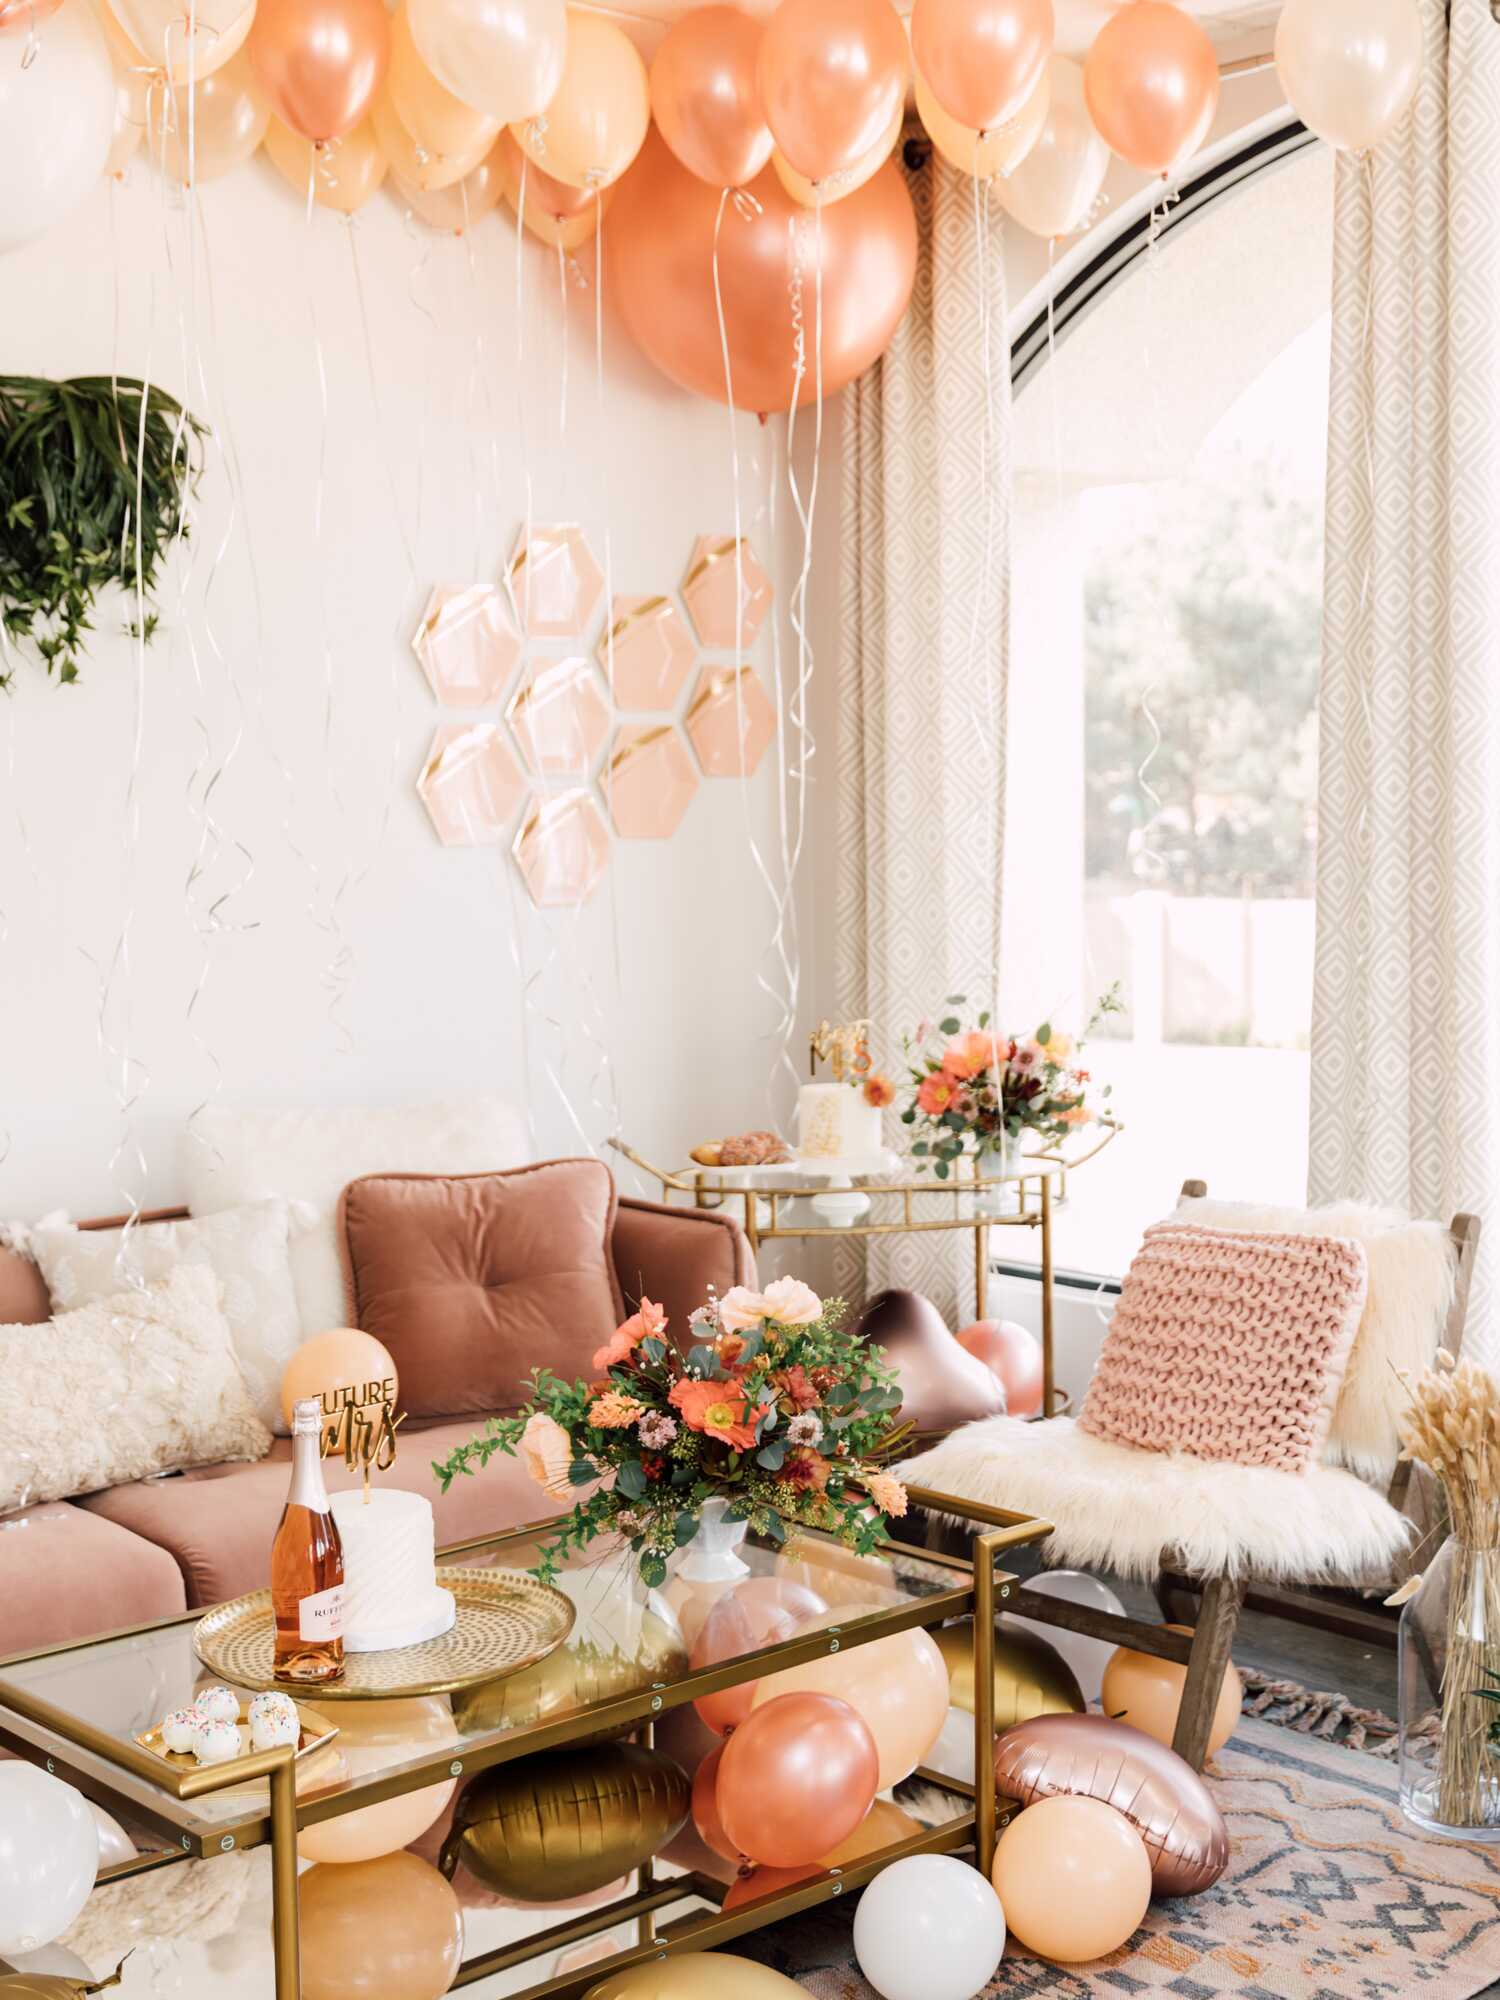 Peach and gold balloons covering the ceiling of a party